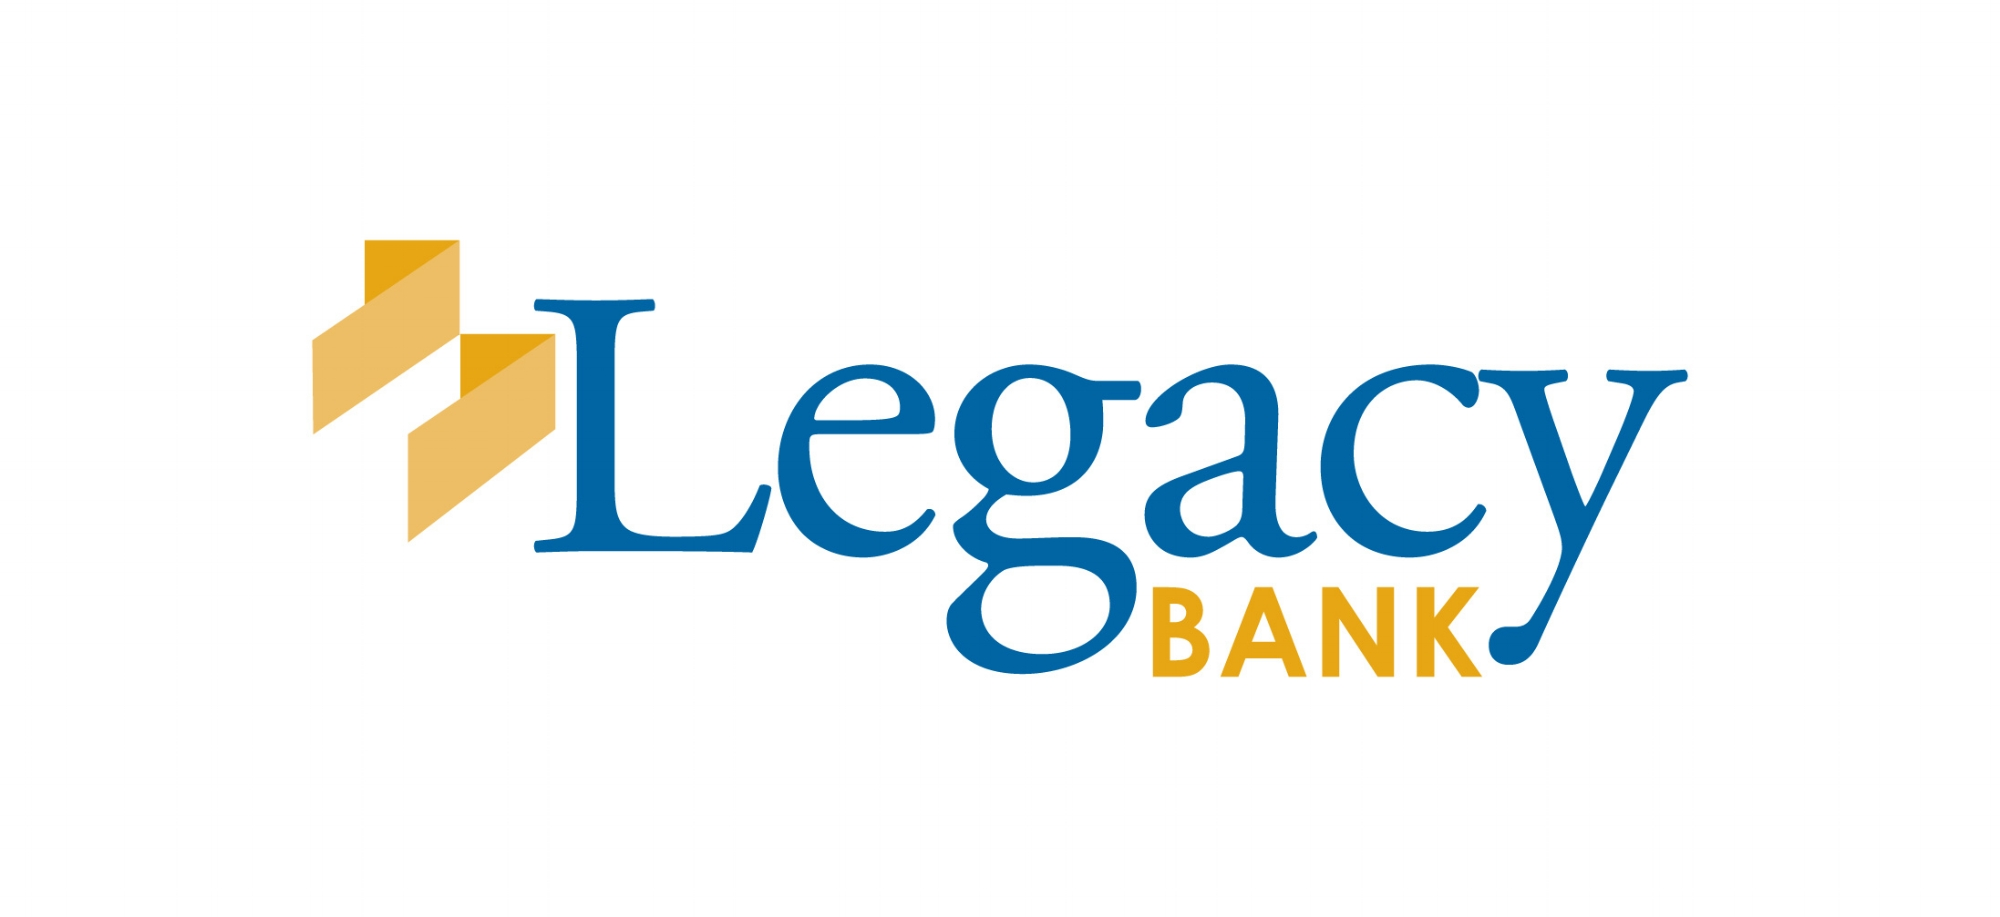 Legacy Bank final brand identity design